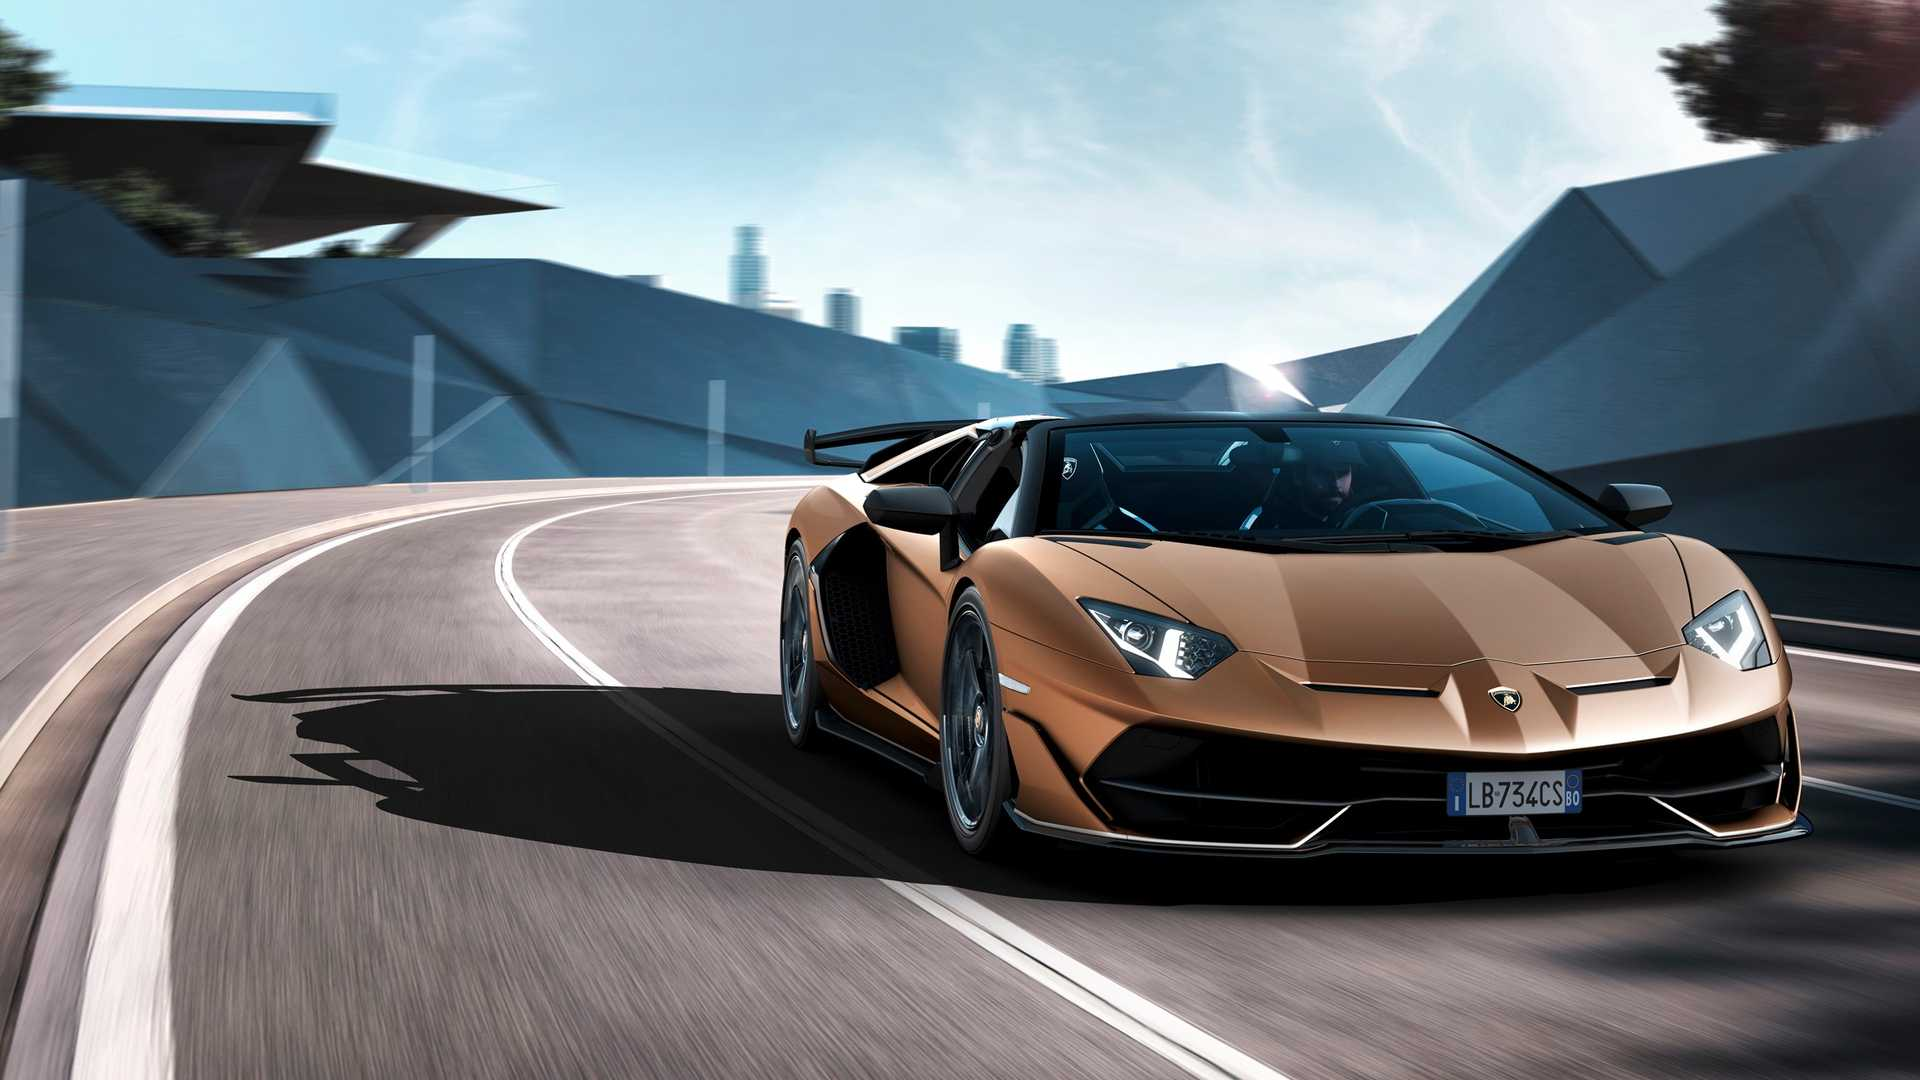 HD Lamborghini Wallpaper